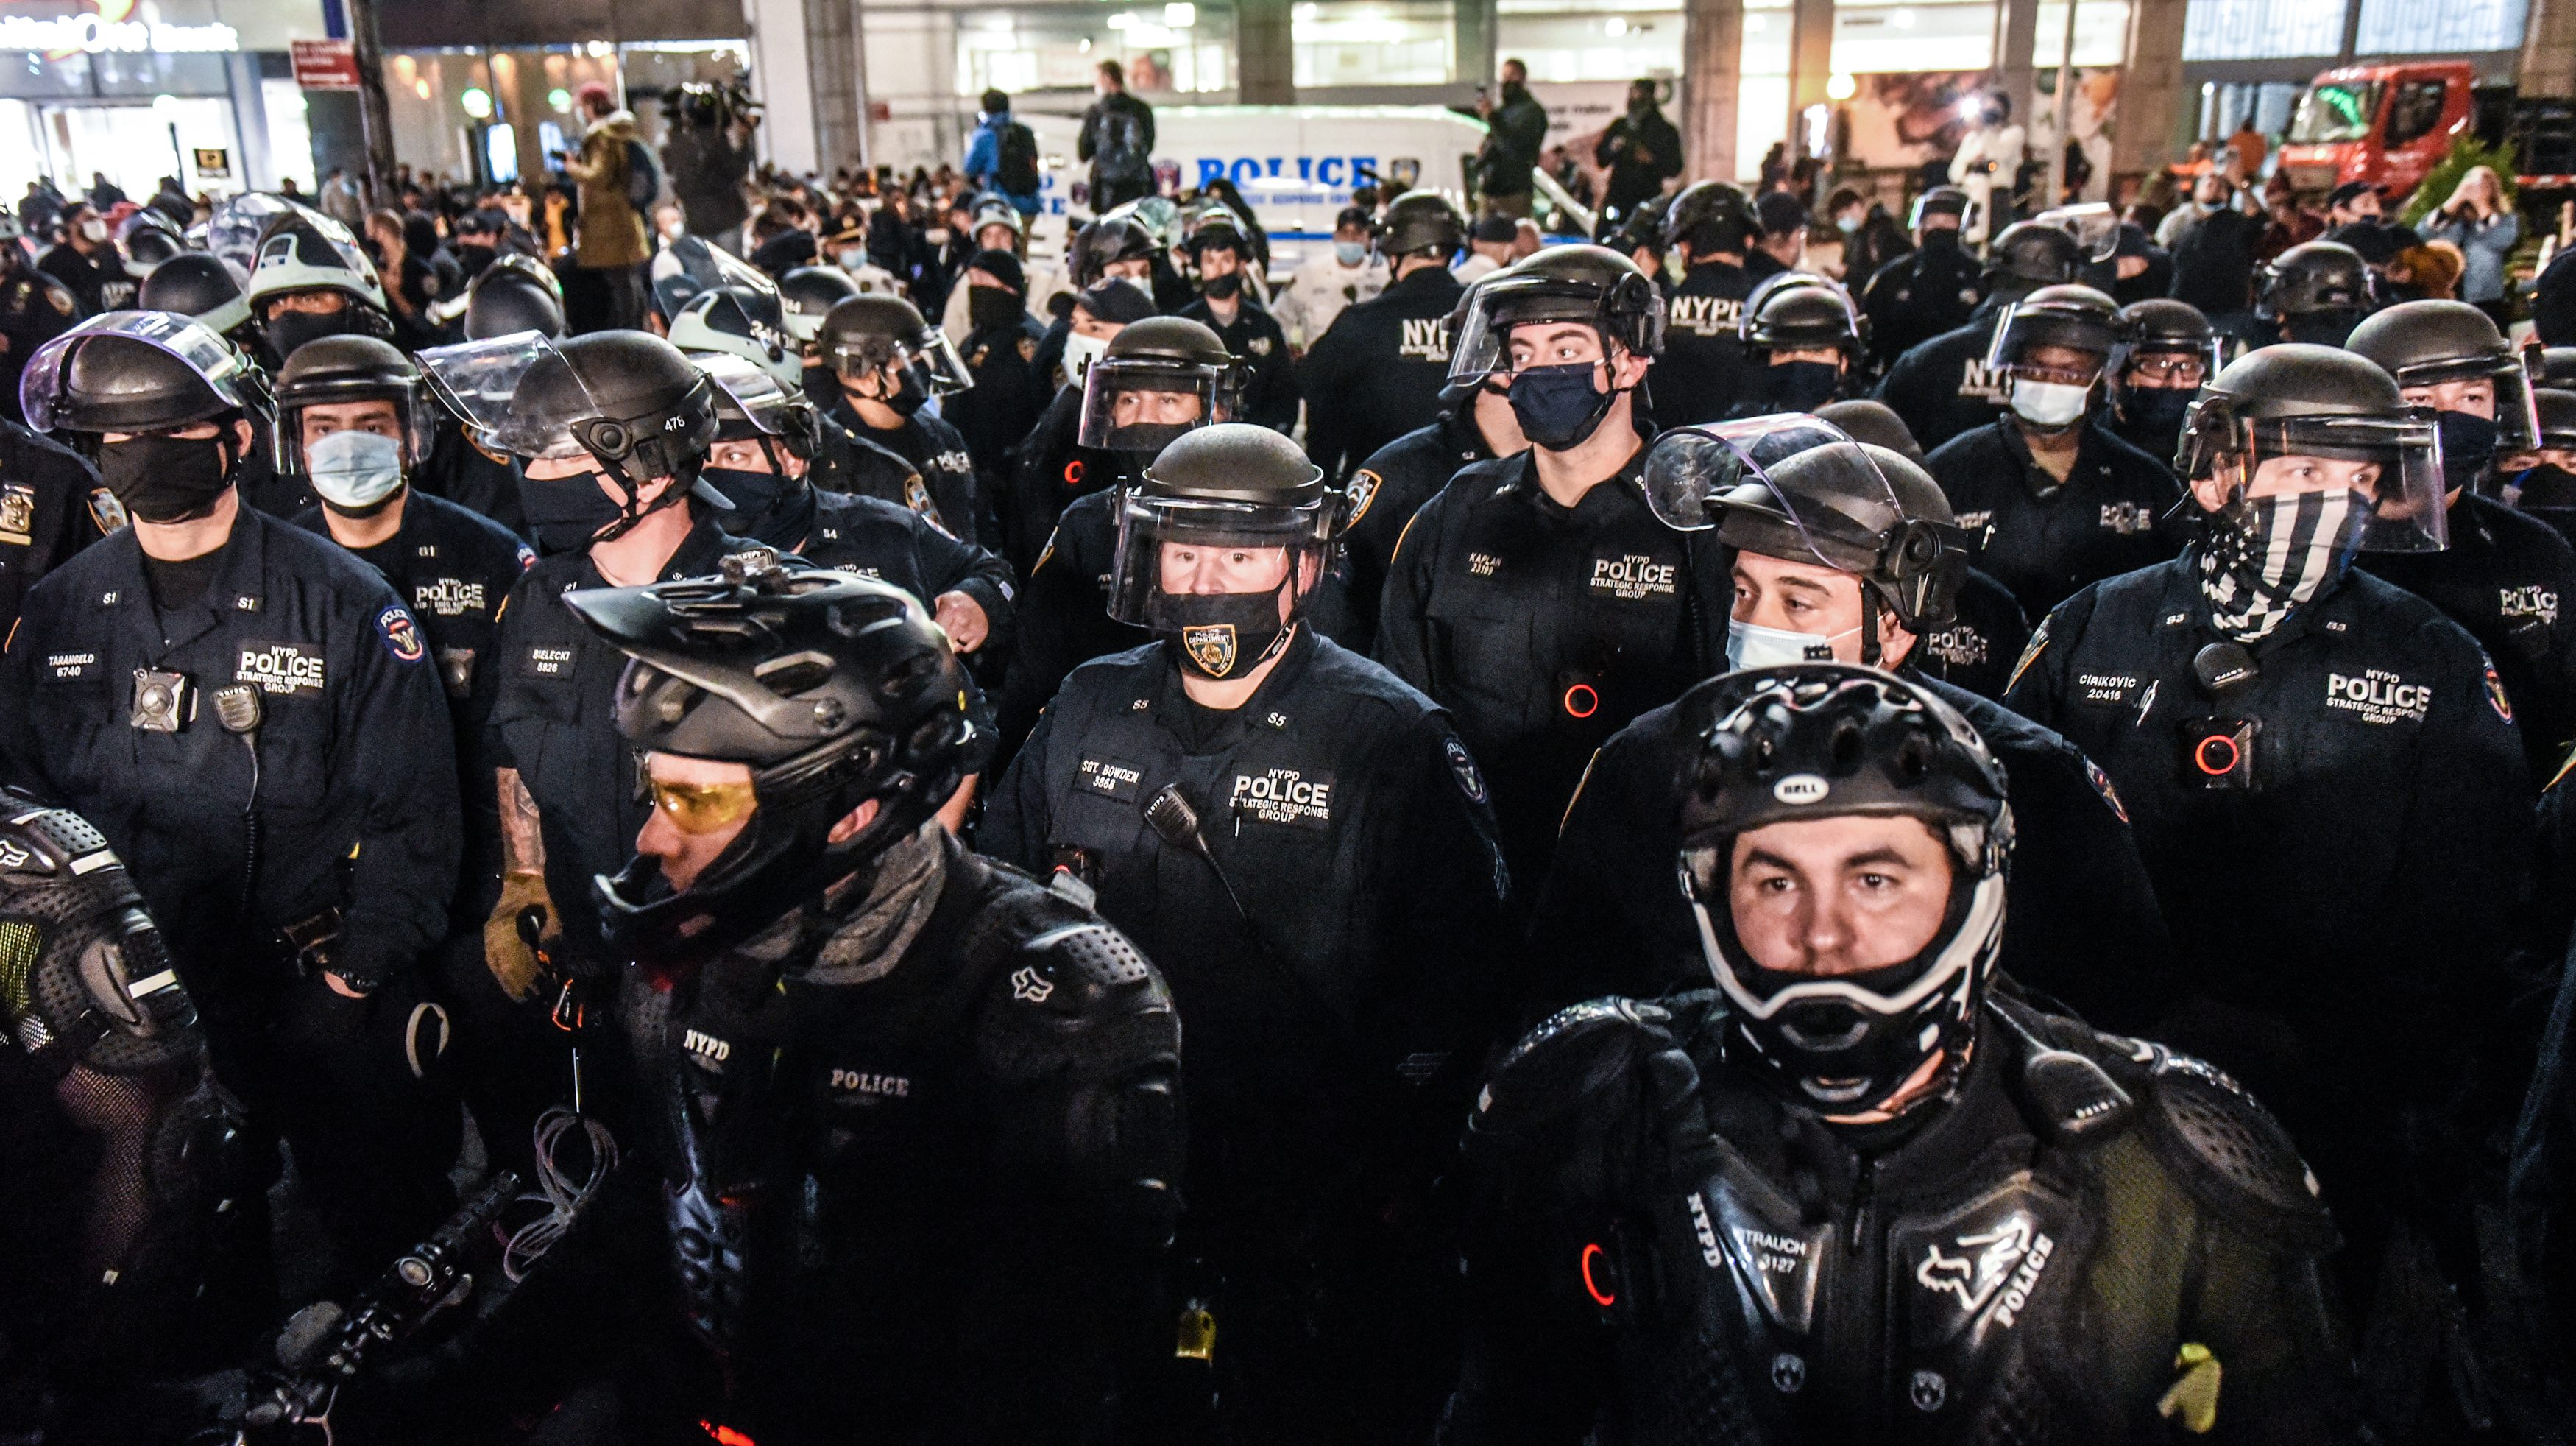 New York Police Department (NYPD) officers stand guard at a protest during the 2020 Presidential election in the Union Square neighborhood of New York, U.S., on Thursday, Nov. 5, 2020. At least three protests are planned Thursday evening in New York City, including a march near an area that saw a confrontation between police and demonstrators on Wednesday night that resulted in more than two dozen arrests. Photographer: Stephanie Keith/Bloomberg via Getty Images